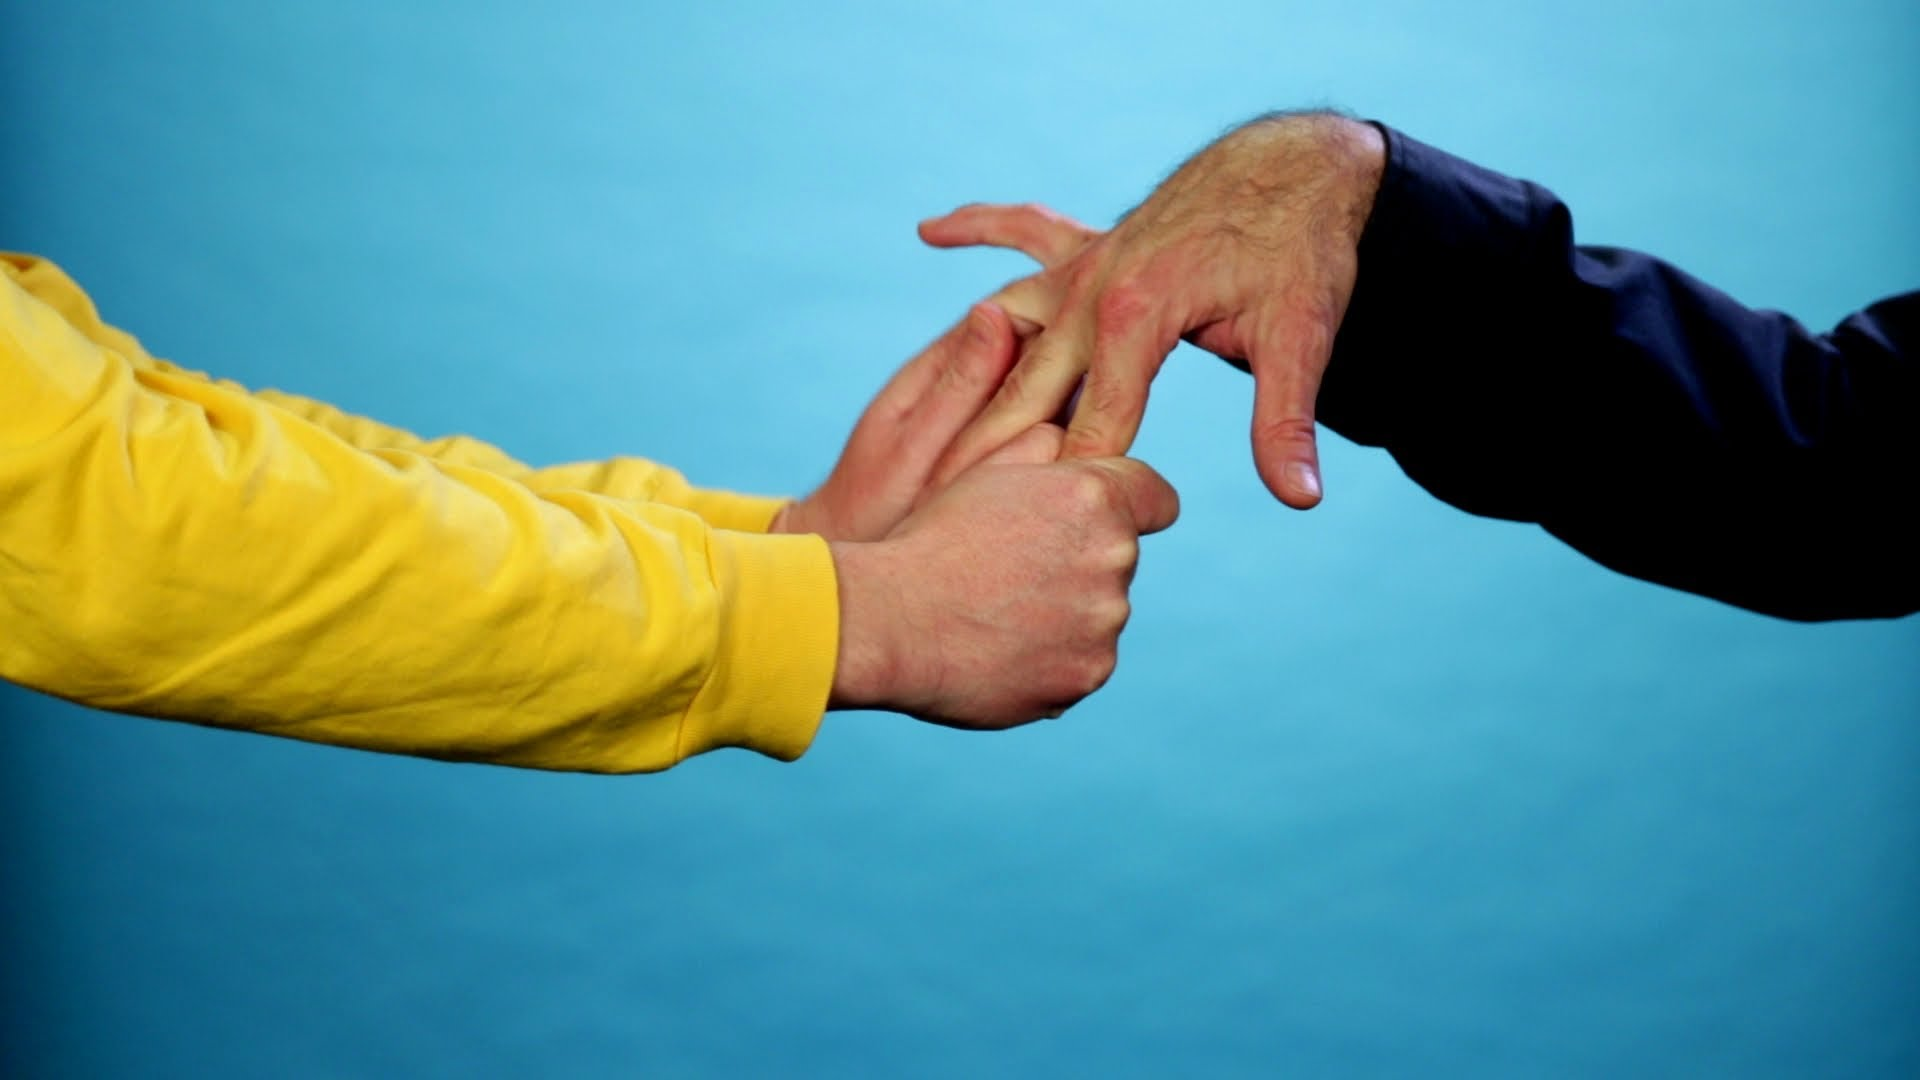 The Good Guide to Shaking Hands Good, A Video Tutorial on ...